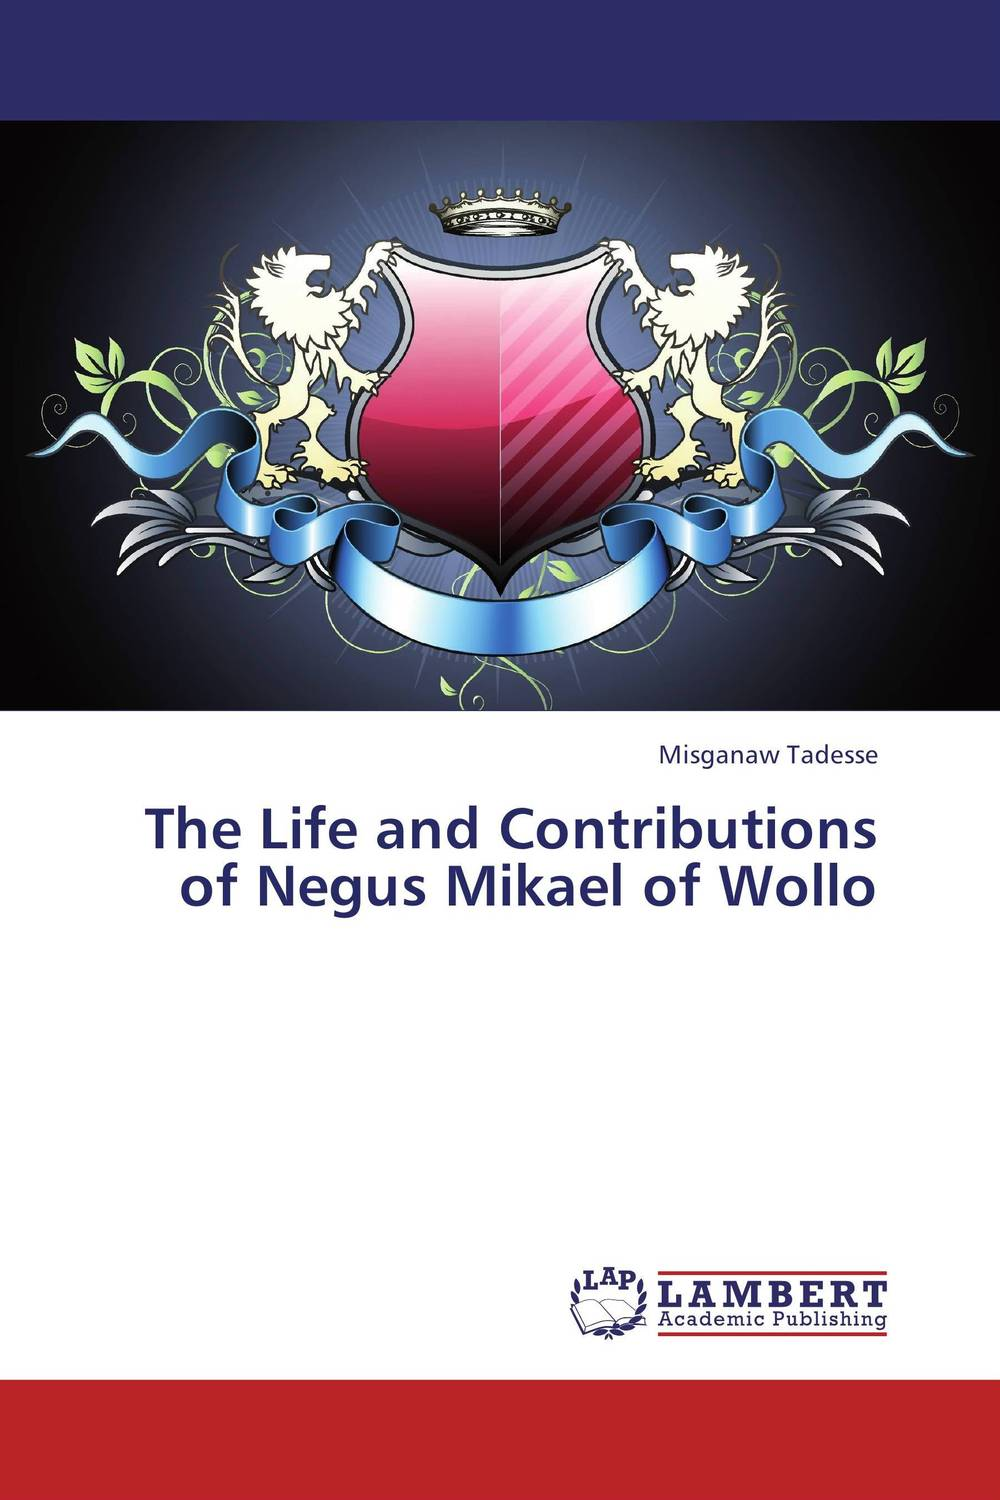 The Life and Contributions of Negus Mikael of Wollo the life and contributions of negus mikael of wollo